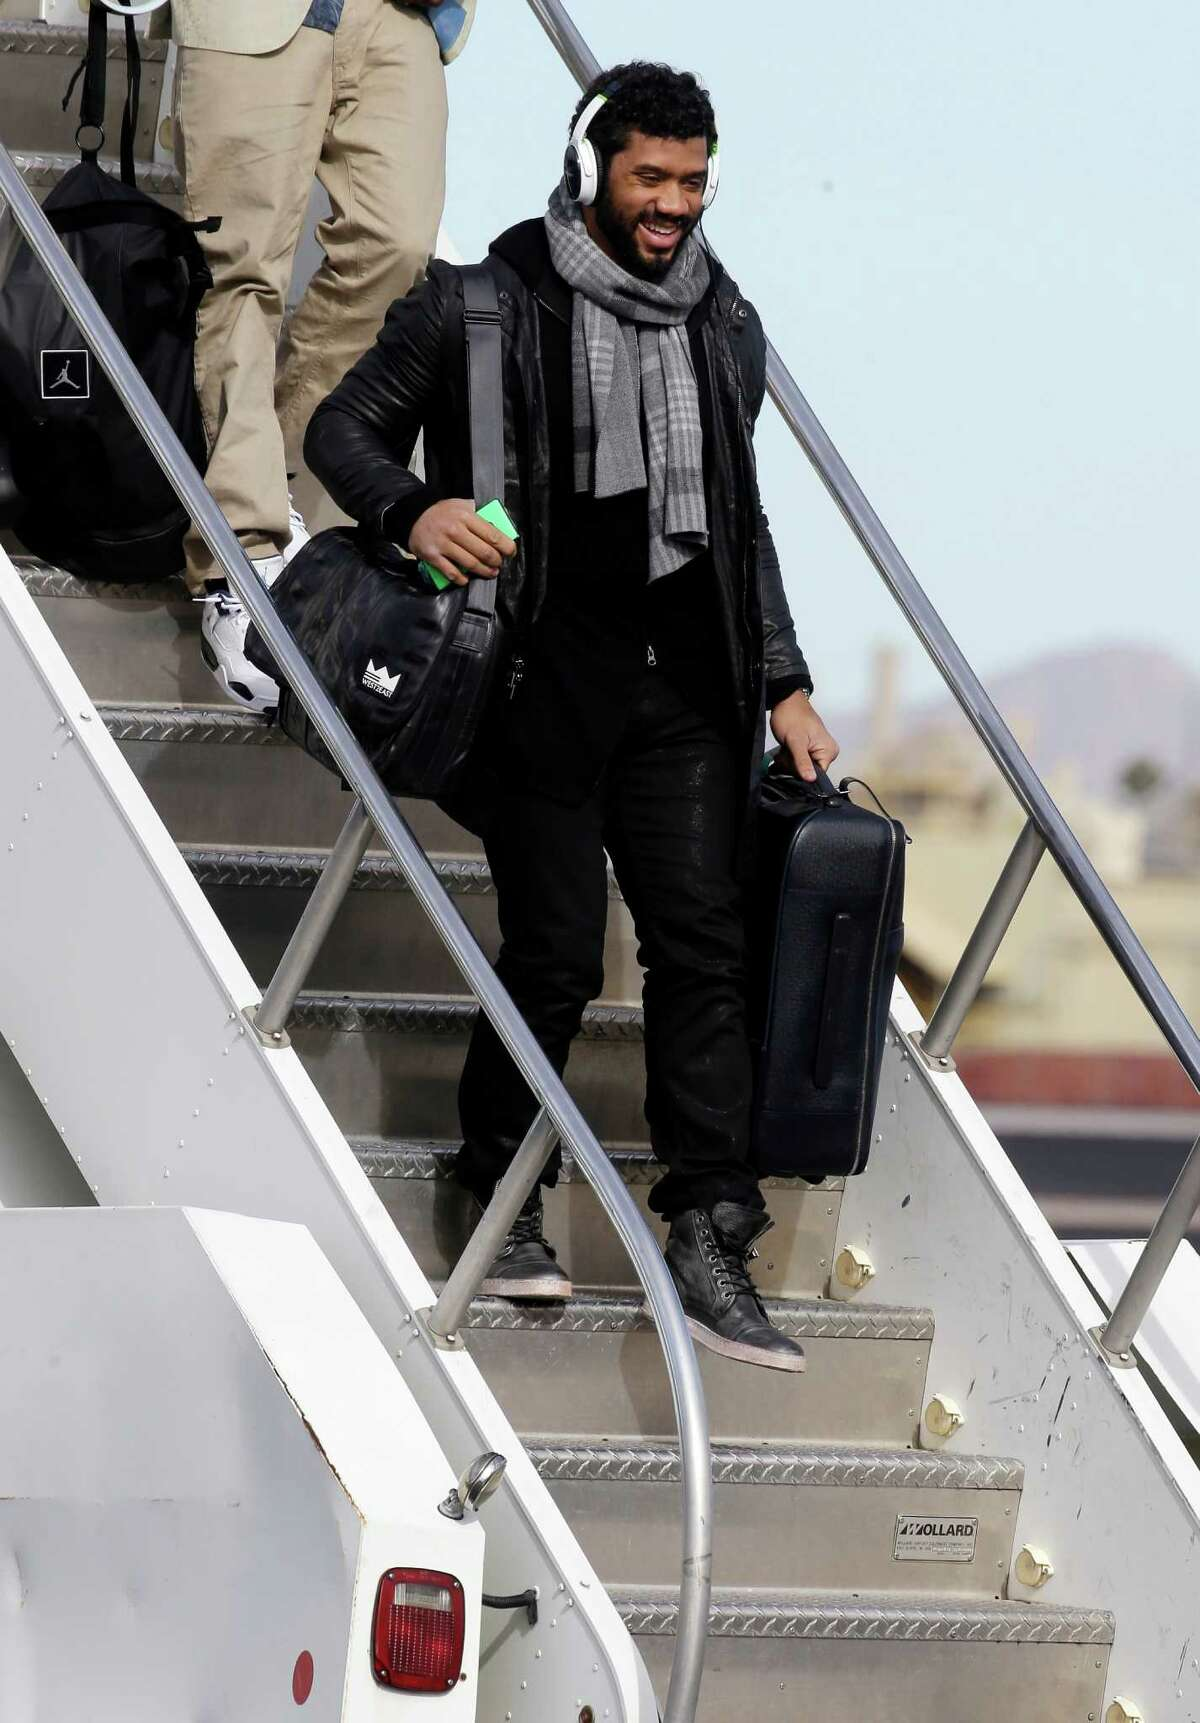 Seattle Seahawks' Russell Wilson smiles as he arrives at Sky Harbor Airport for NFL Super Bowl XLIX football game Sunday, Jan. 25, 2015, in Phoenix. The Seahawks play the New England Patriots in Super Bowl XLIX on Sunday, Feb. 1, 2015.